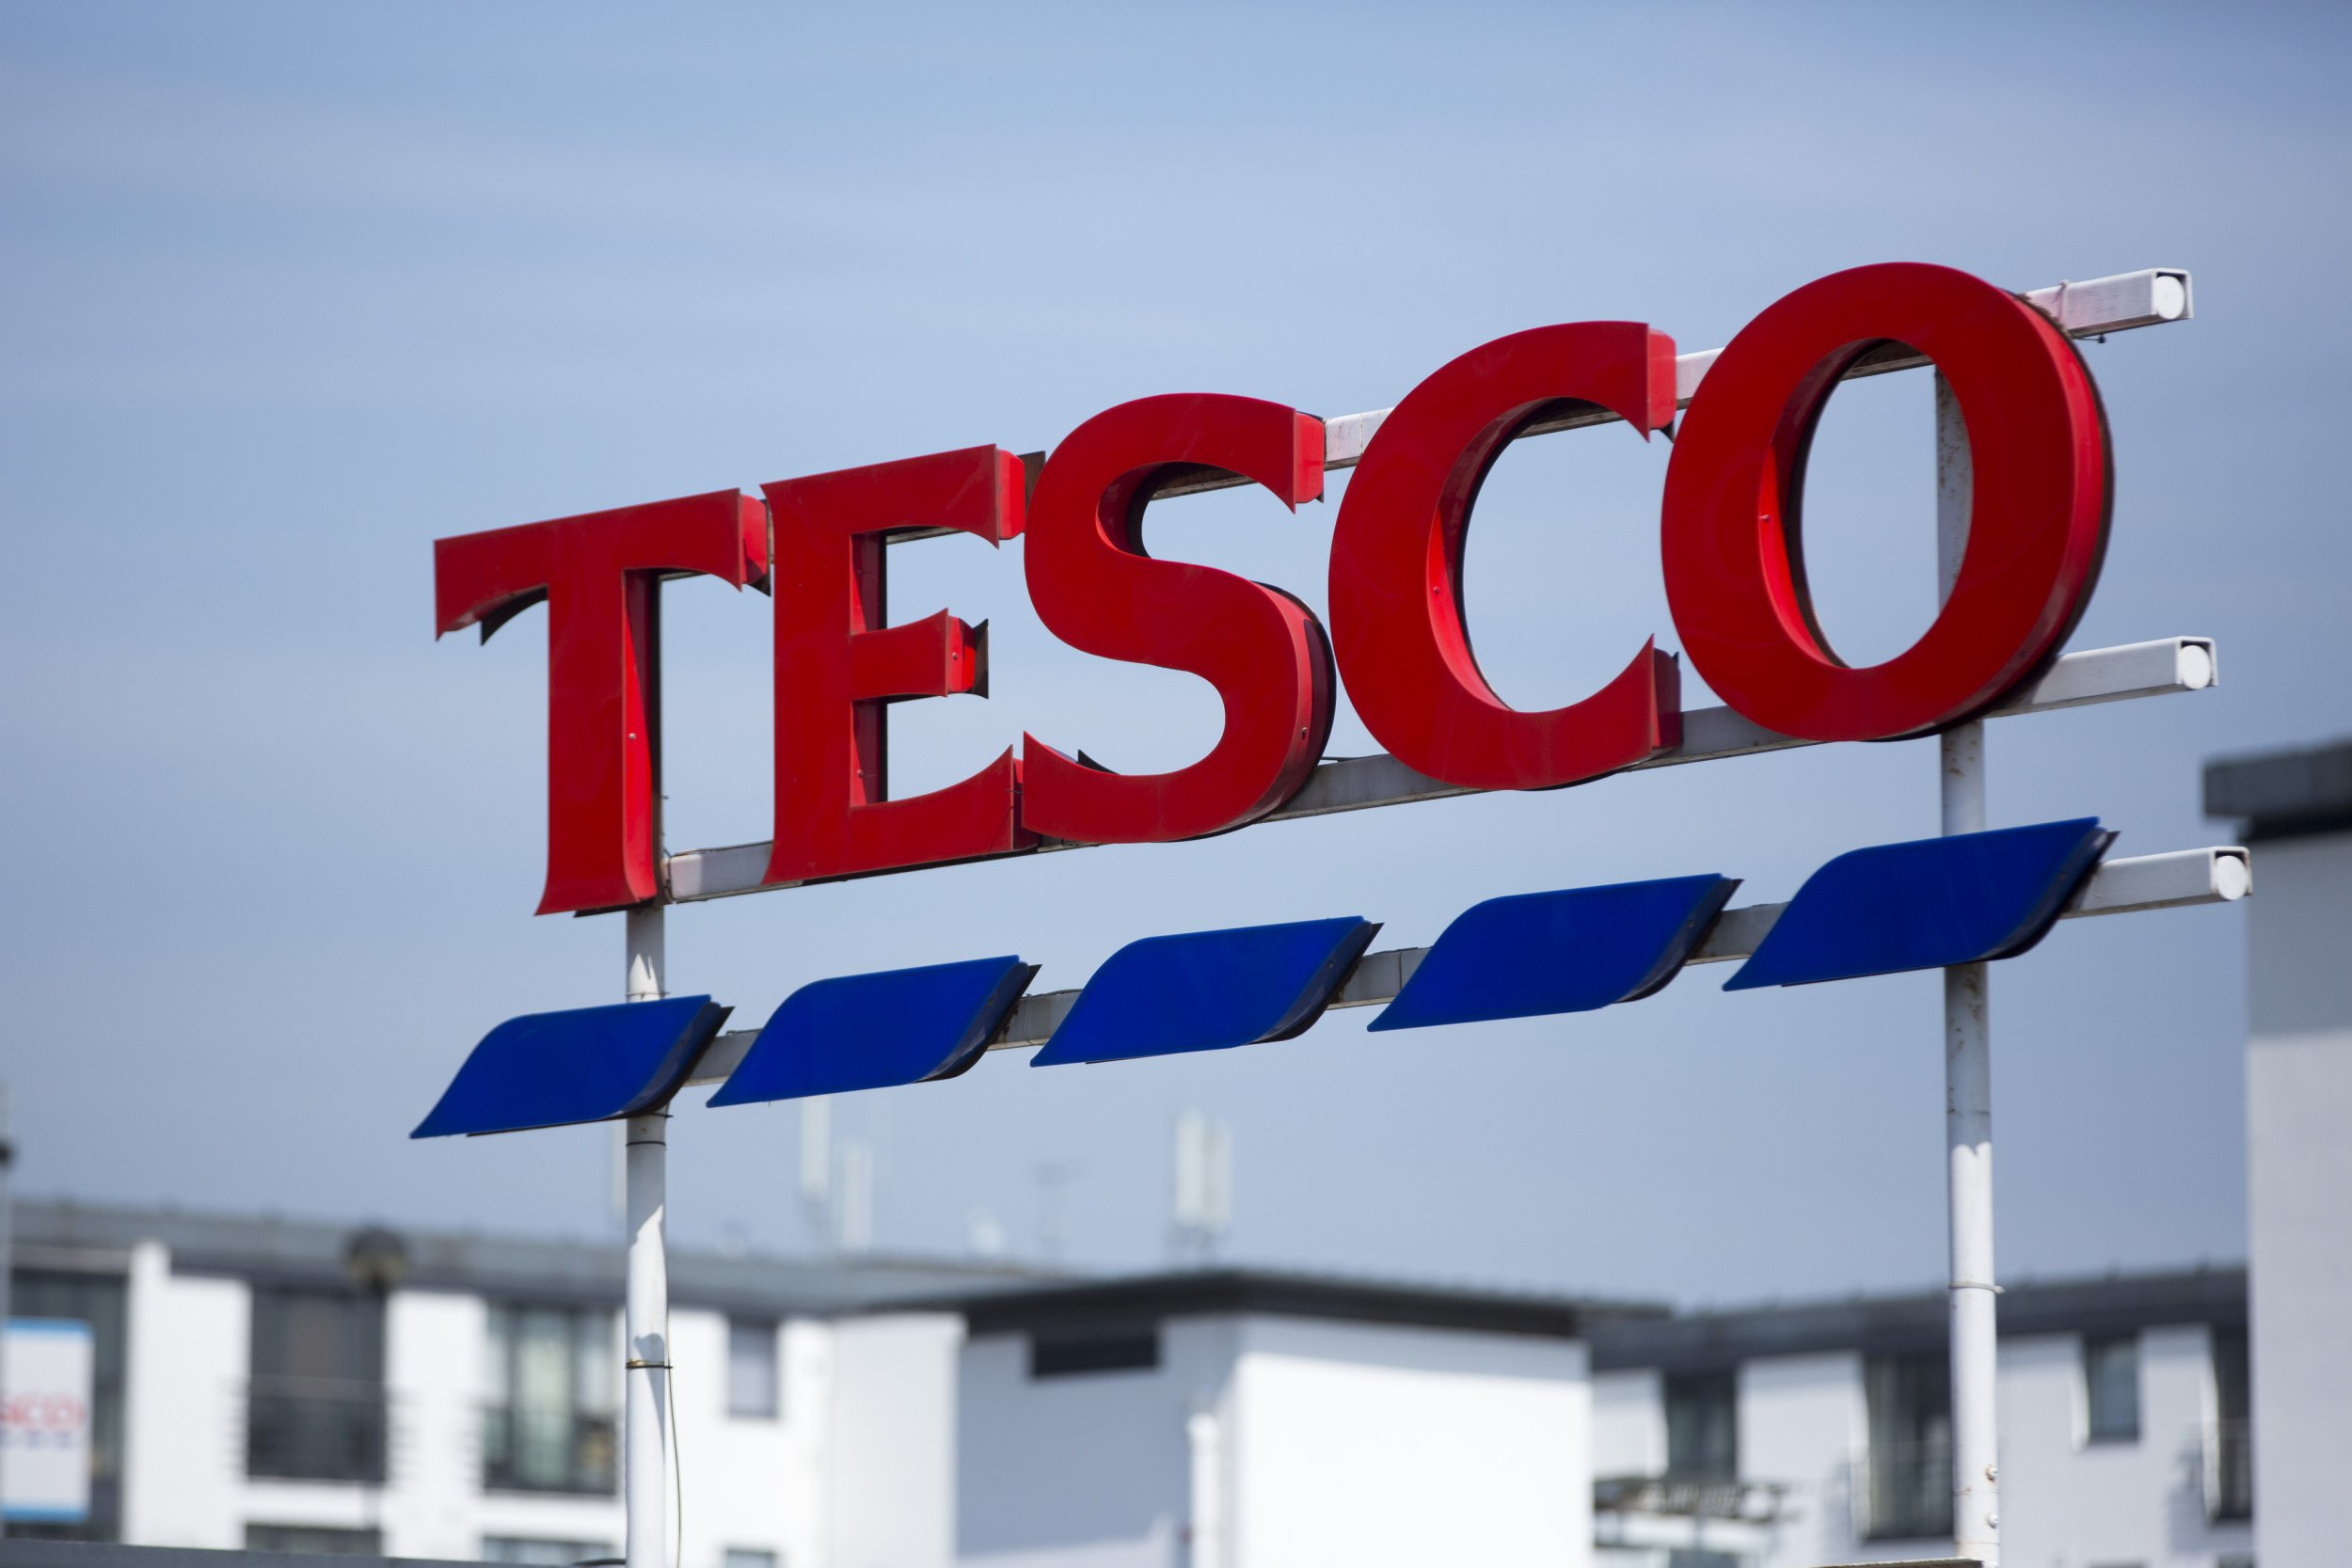 Tesco opening times for New Year's Eve and New Year's Day 2019